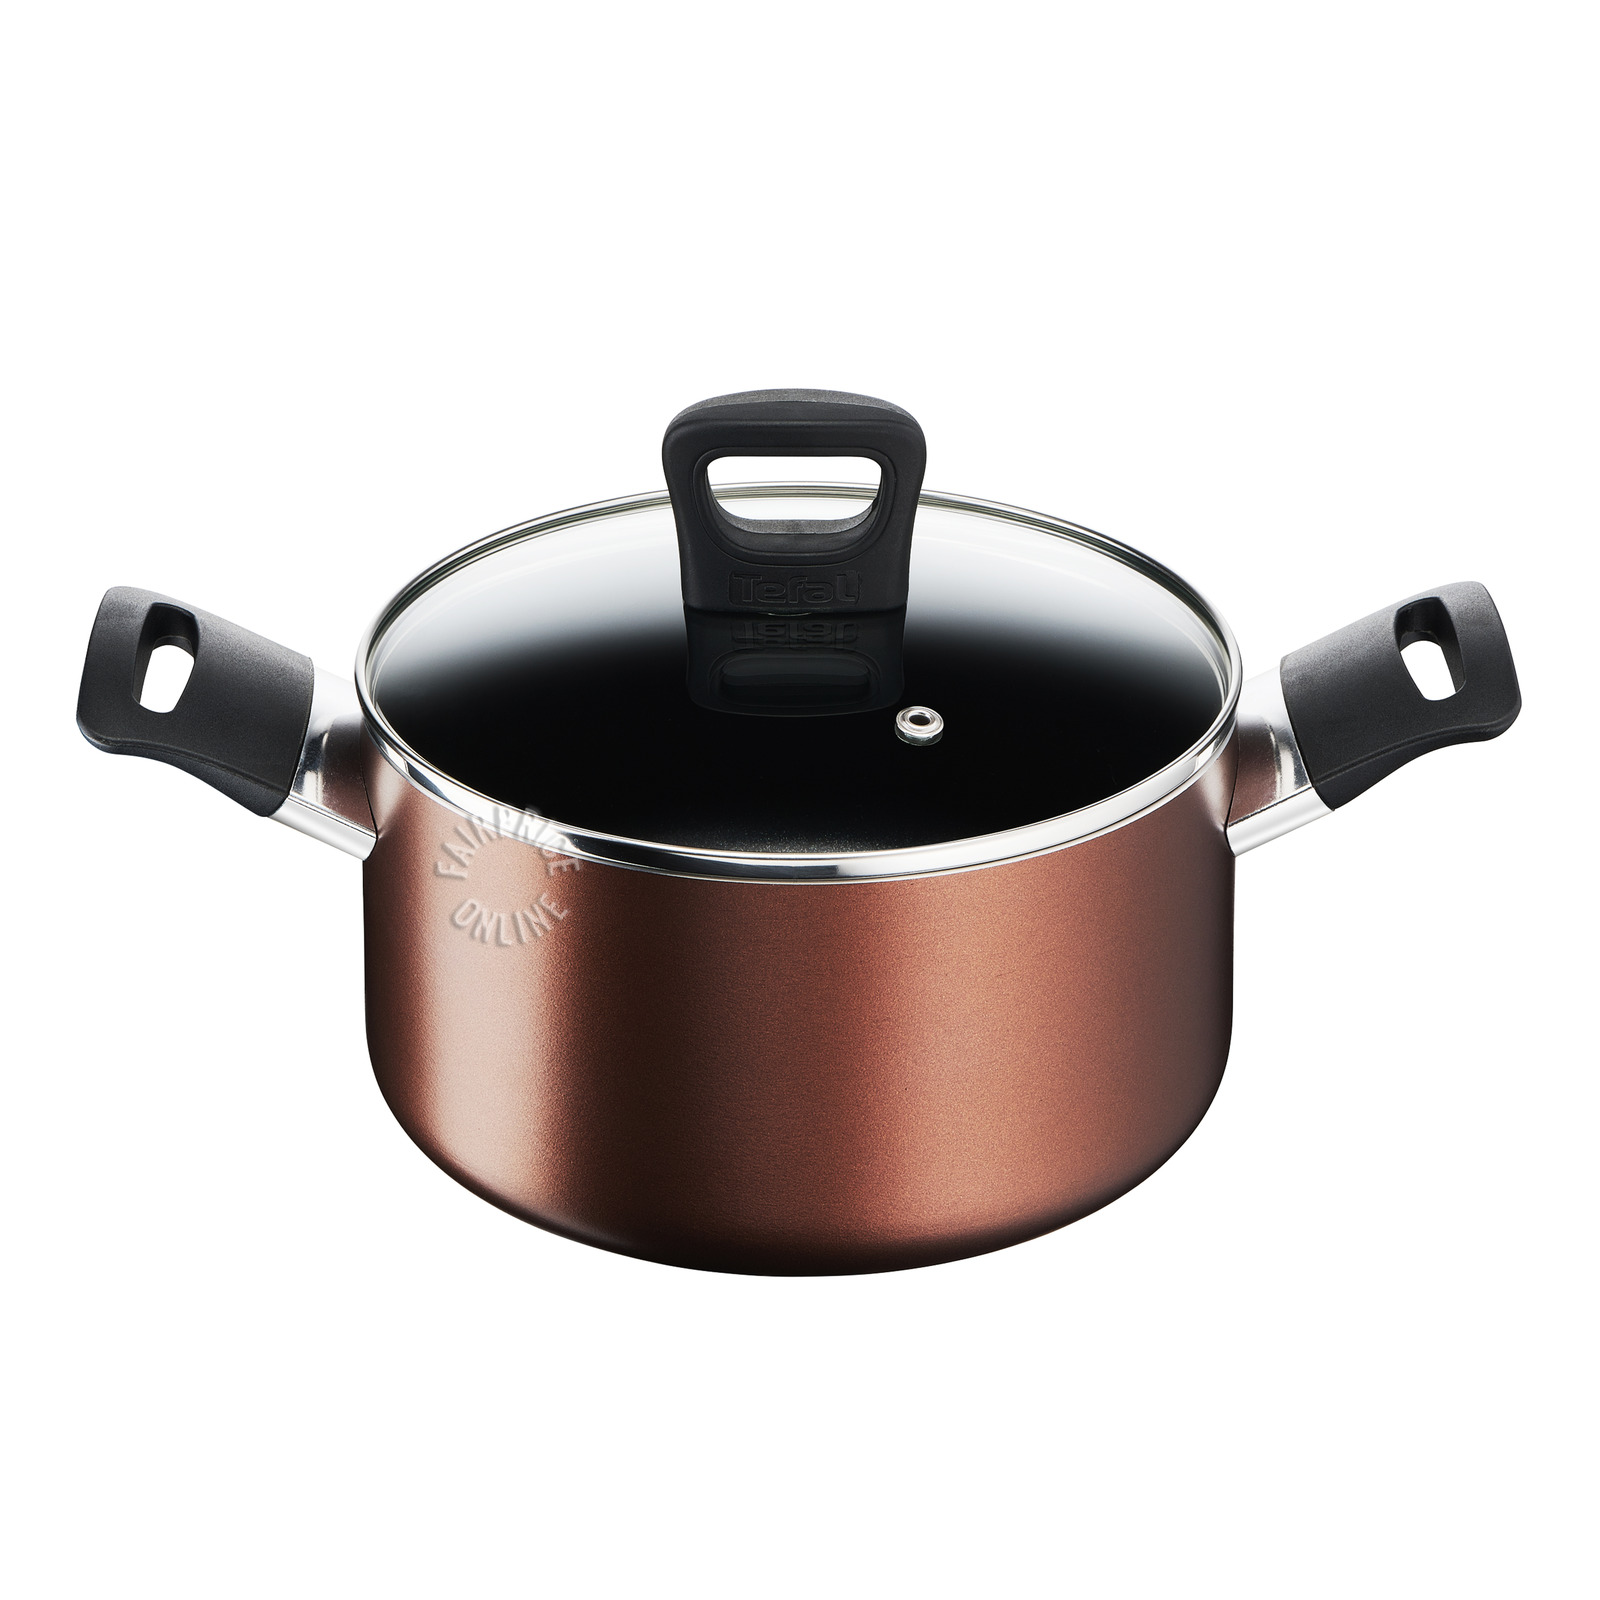 Tefal Day By Day Stewpot with Lid - 22cm (G14361)